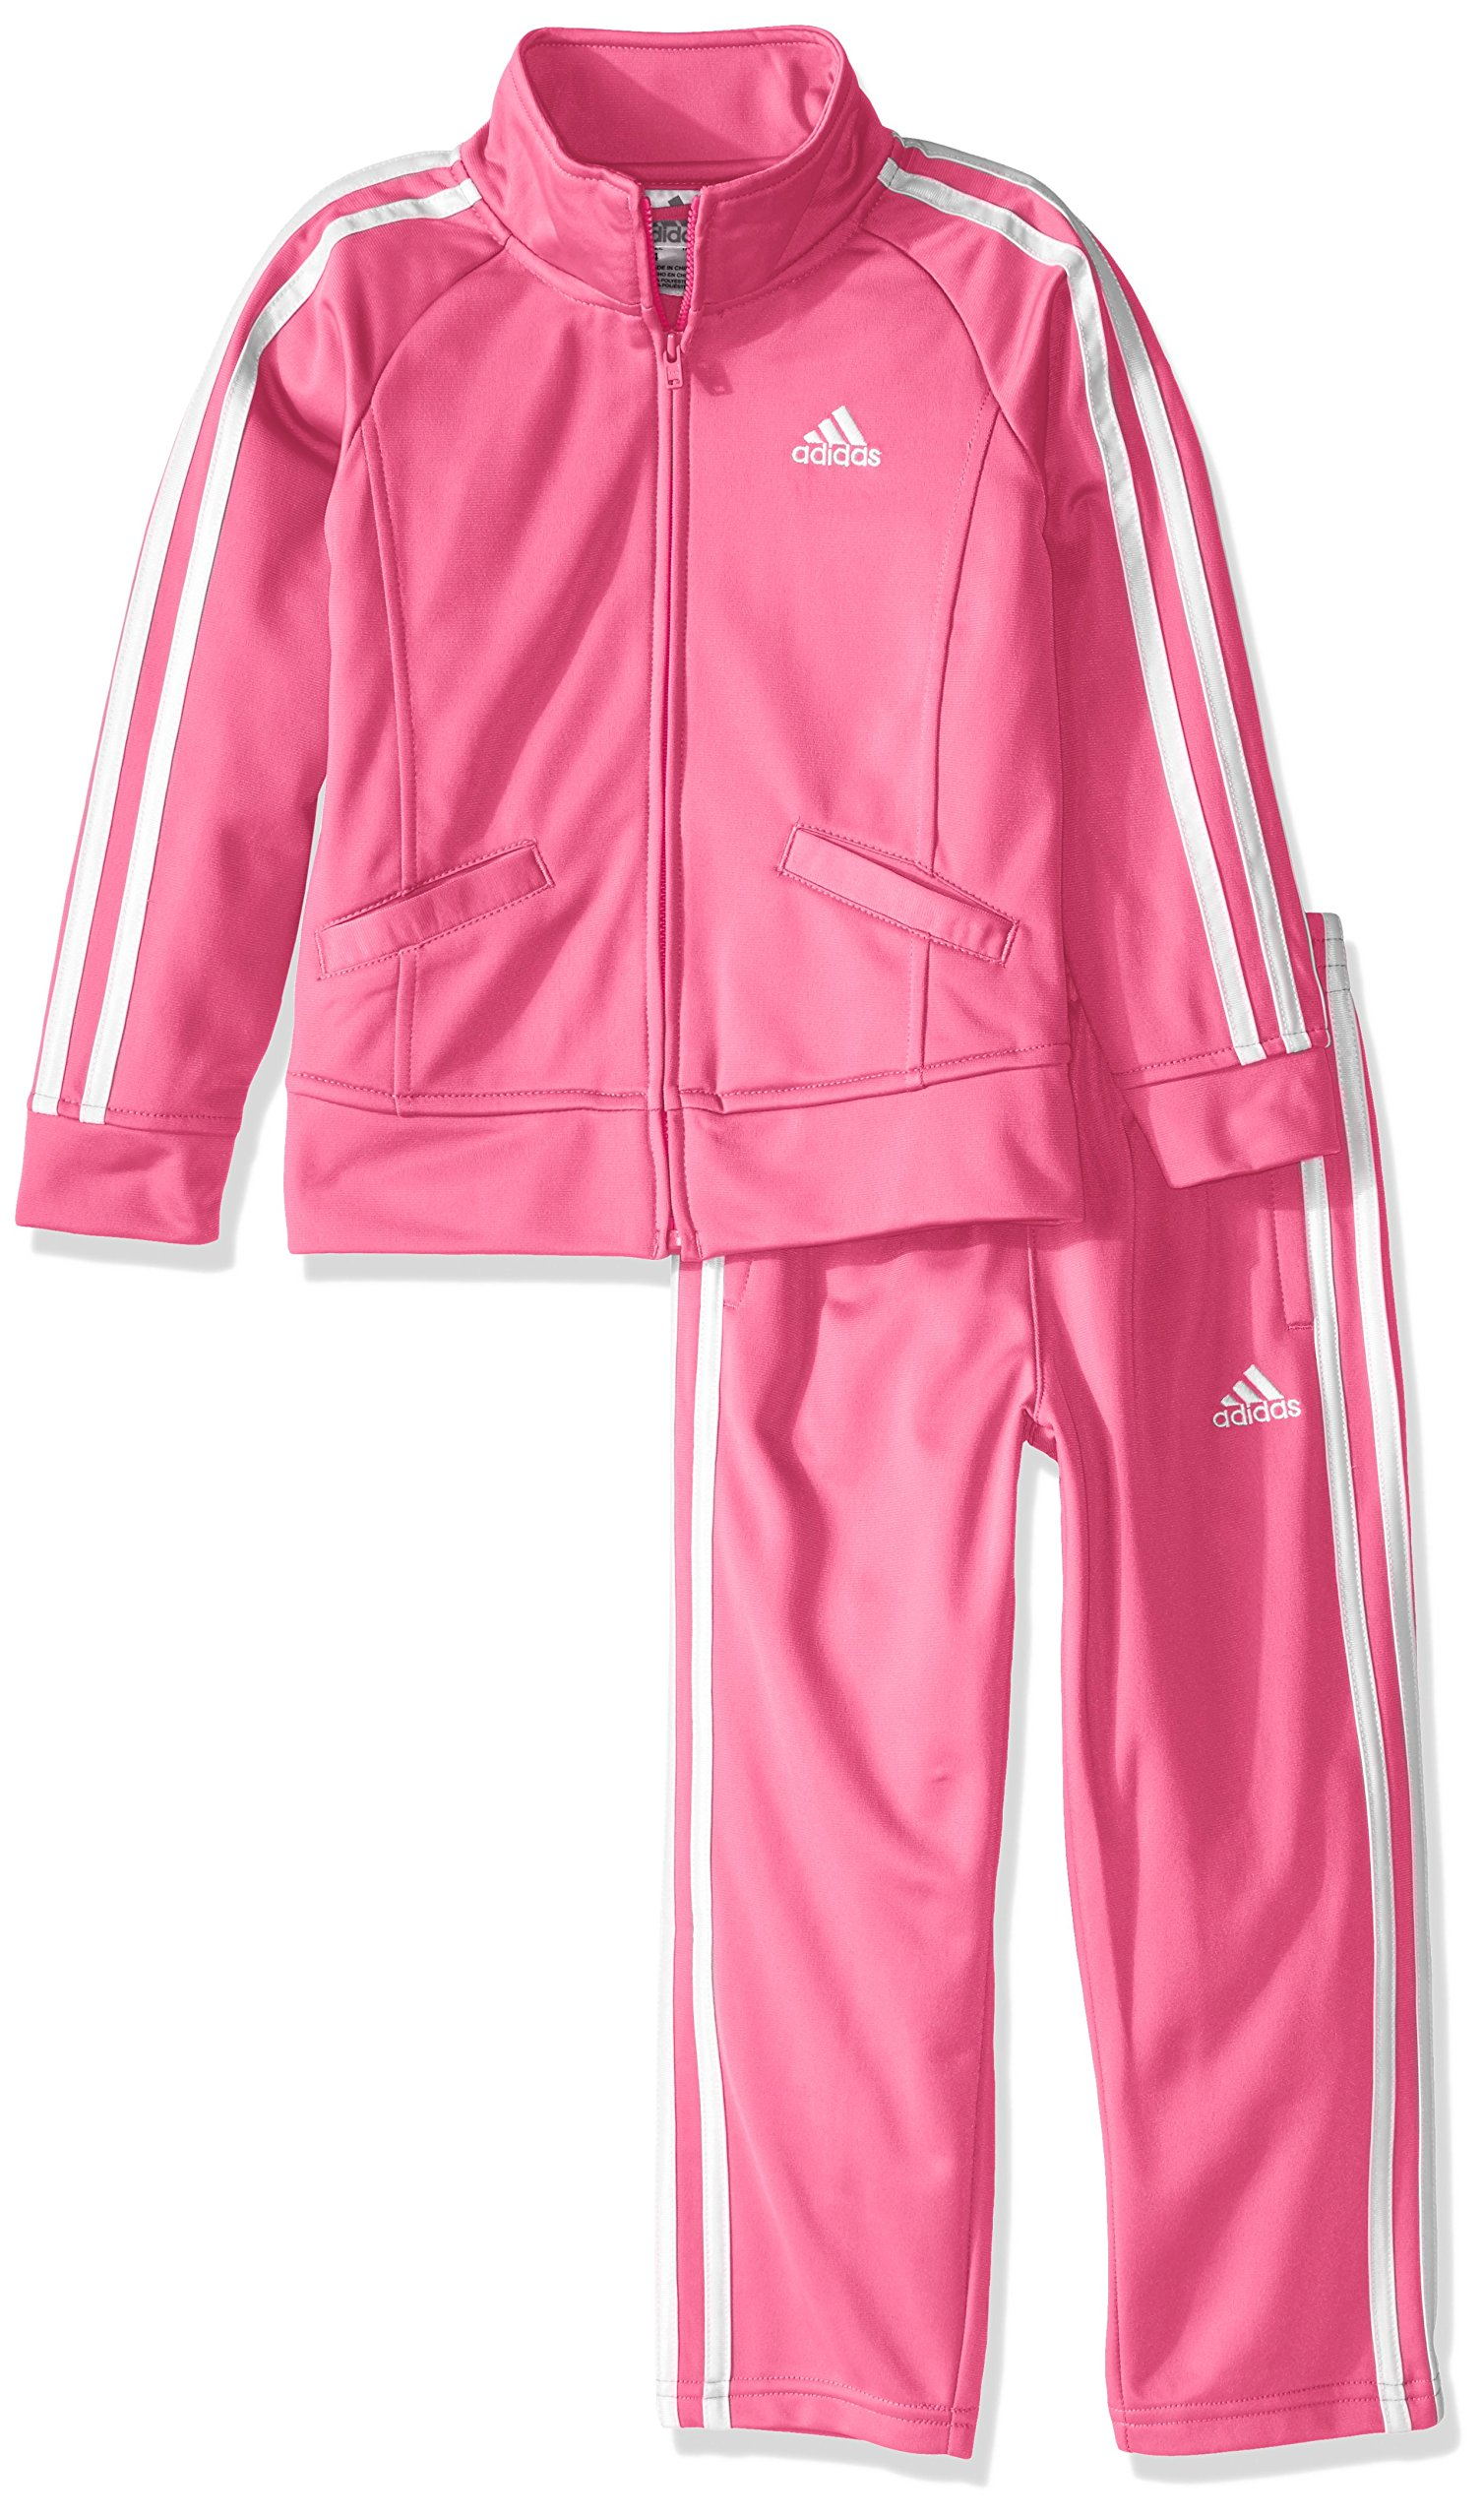 adidas Little Girls' Tricot Zip Jacket and Pant Set, Pink Basic, 5 by adidas